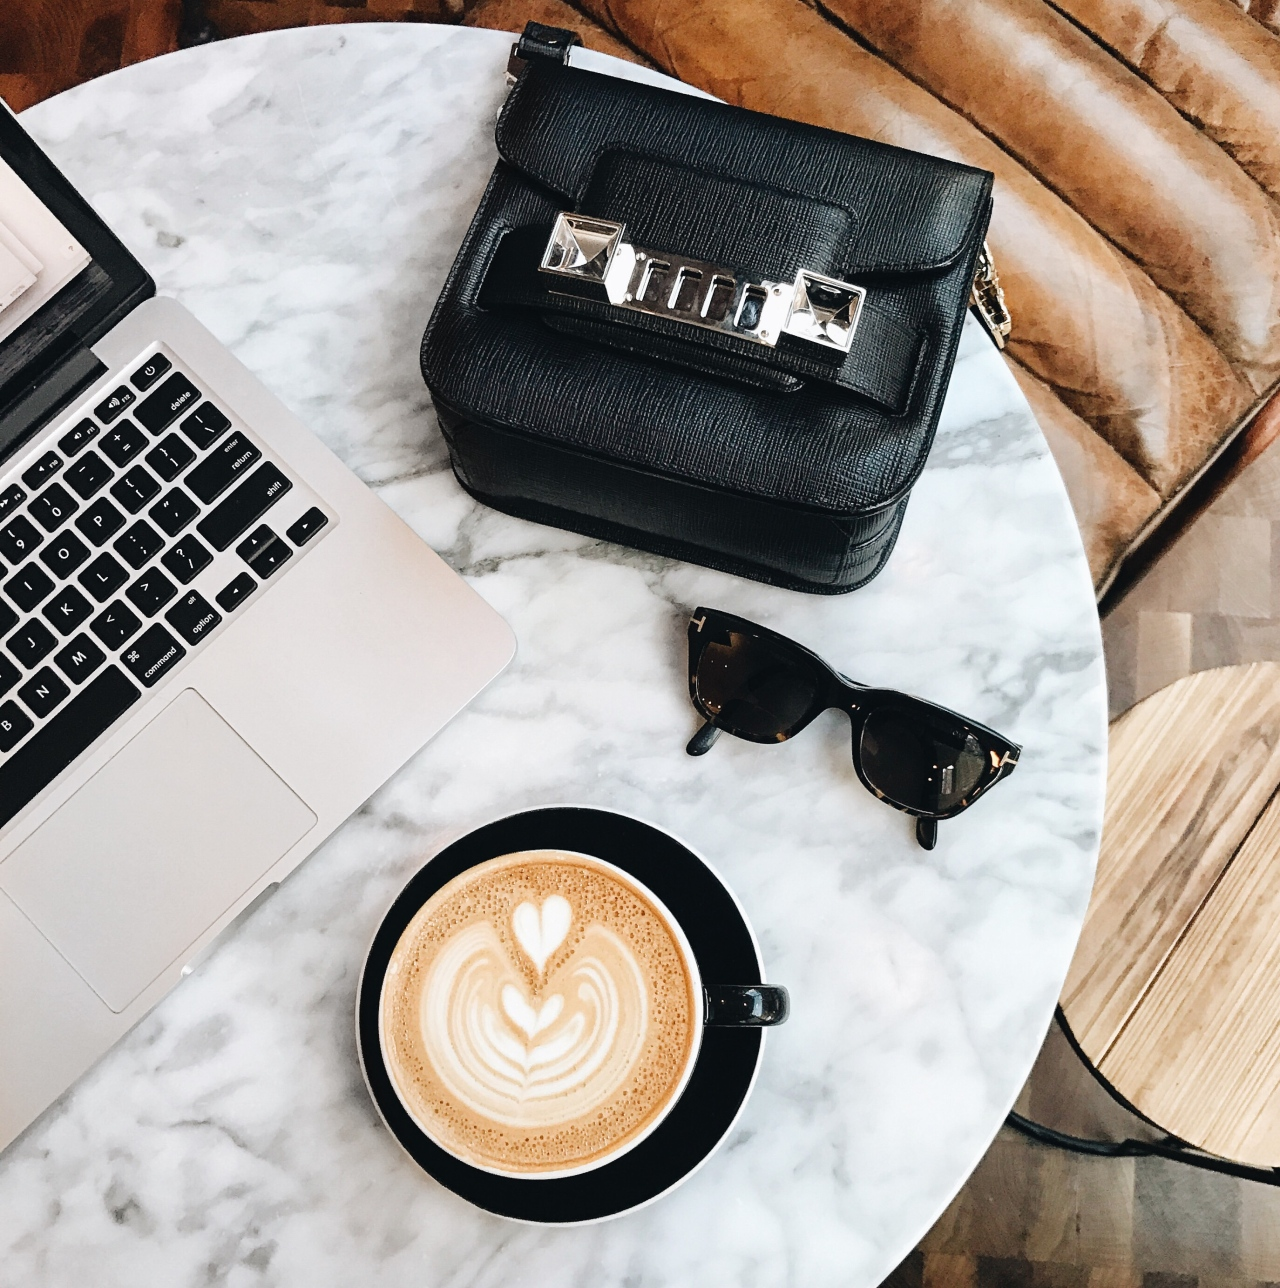 Becca Risa Luna | Photographer, Art Director and Copywriter | Coffee and Handbags